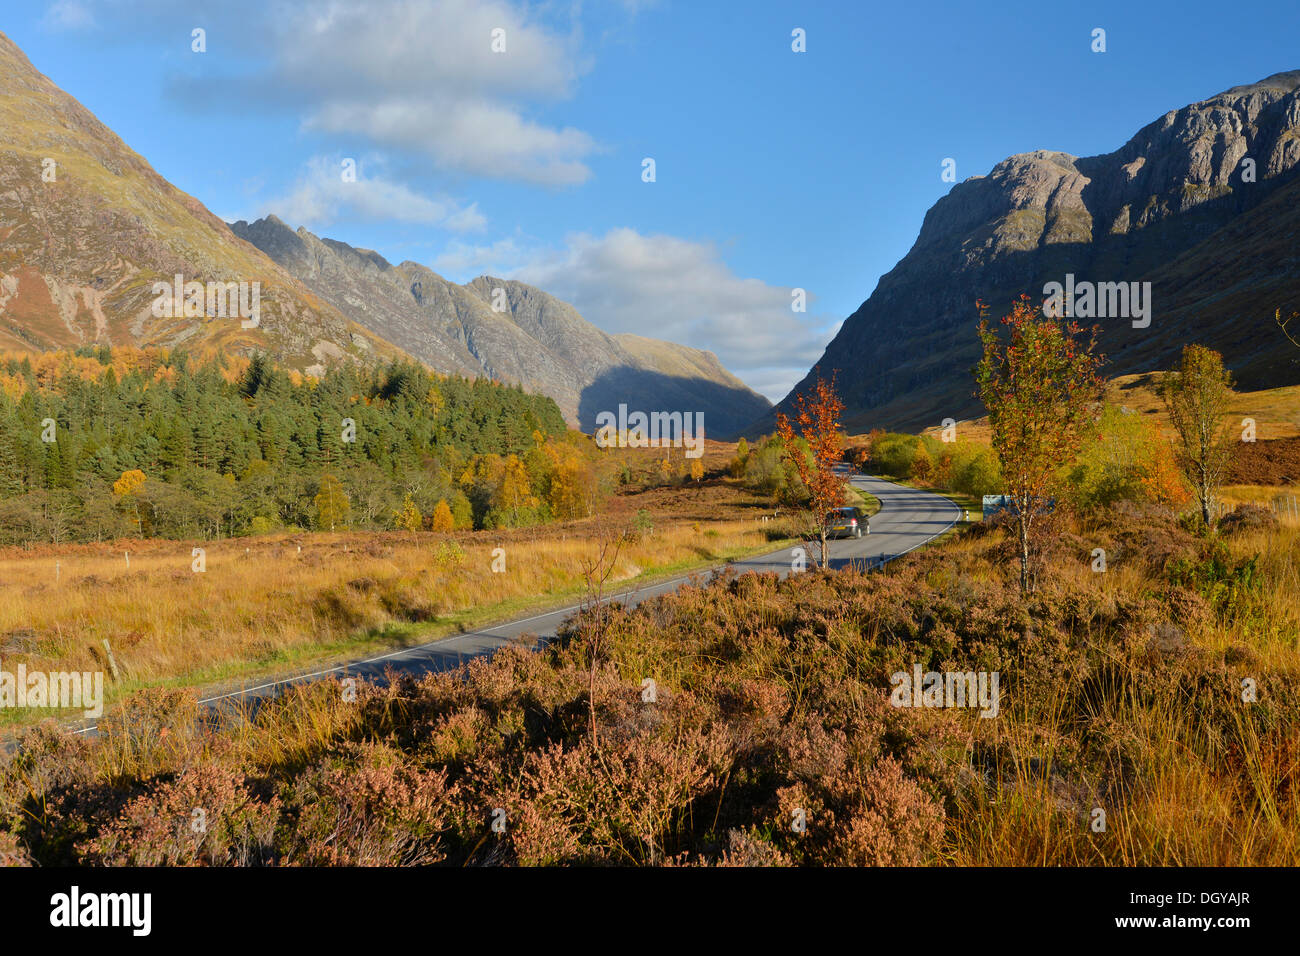 A82 road, autumn in the Valley of Glencoe, Scottish Highlands, Scotland, United Kingdom, Europe - Stock Image